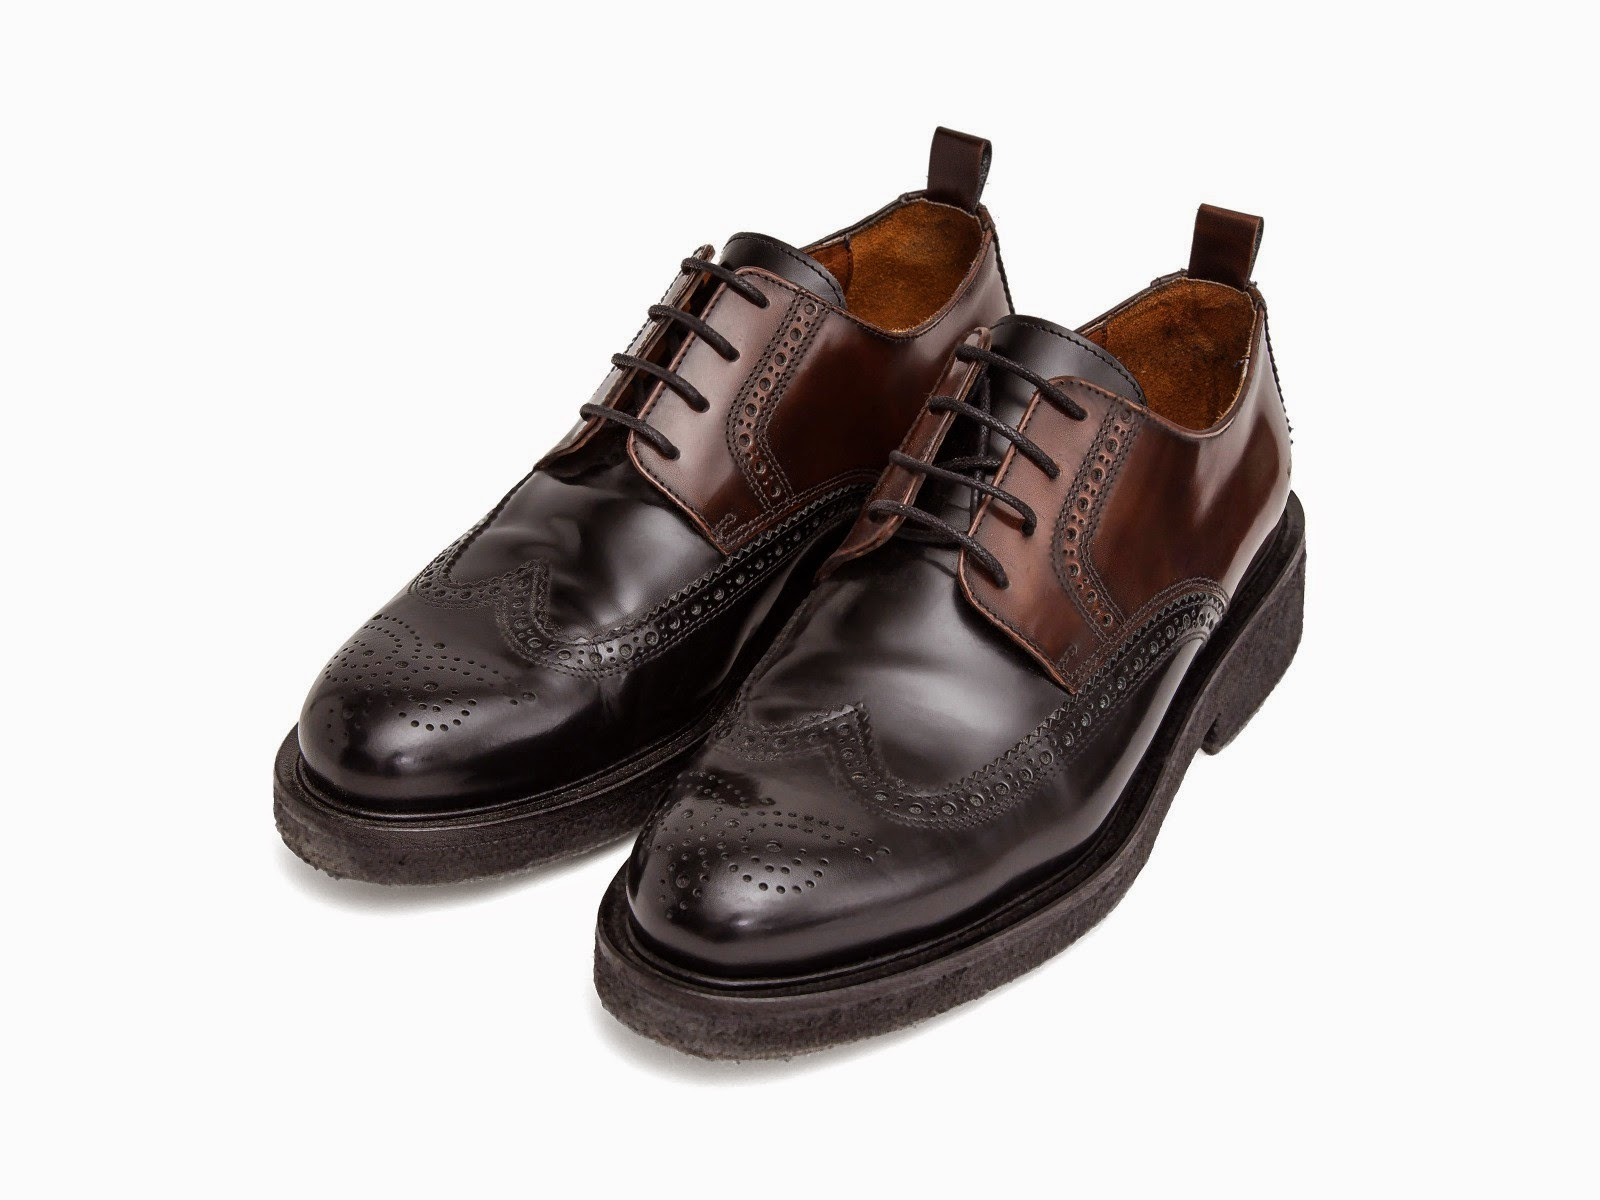 http://amiparis.fr/fr/brogues-2083.html